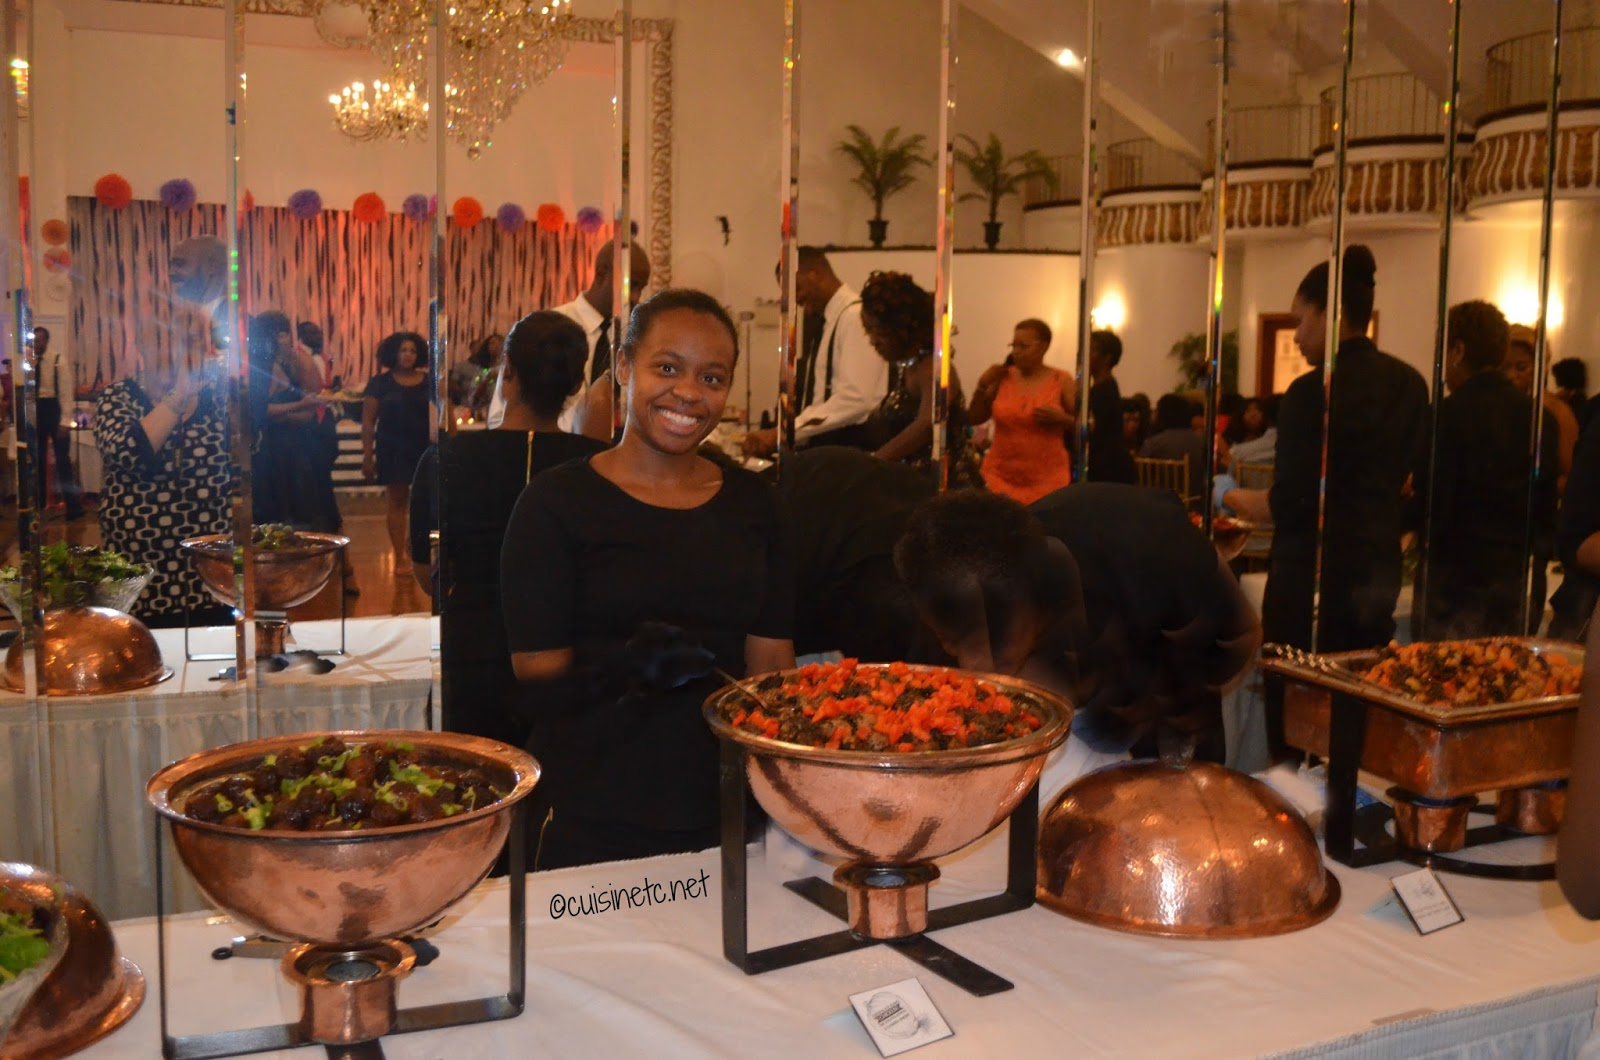 Friendly Smiling Servers Offering Up CuisinEtcs Delicious Eclectic Wedding Food New York City